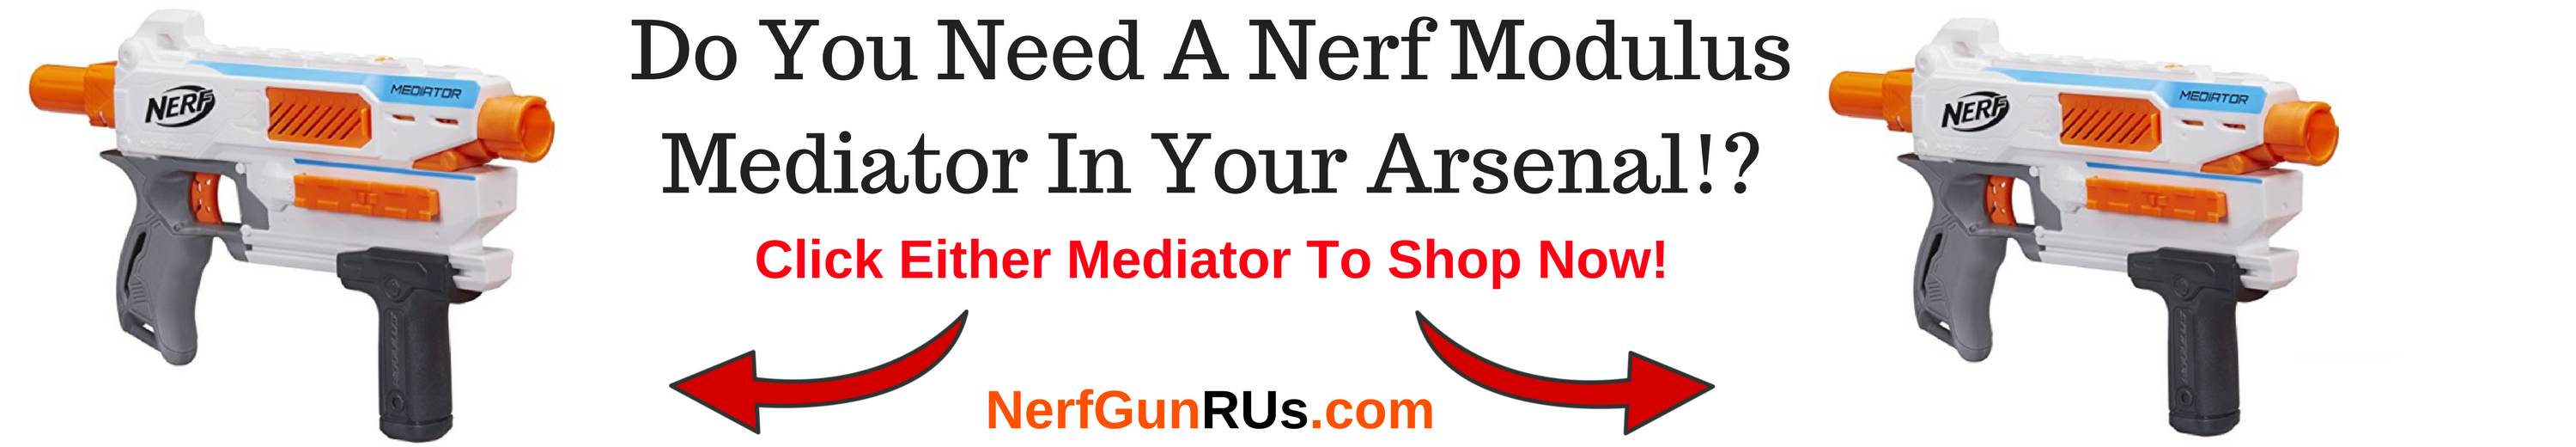 Do You Need A Nerf Modulus Mediator